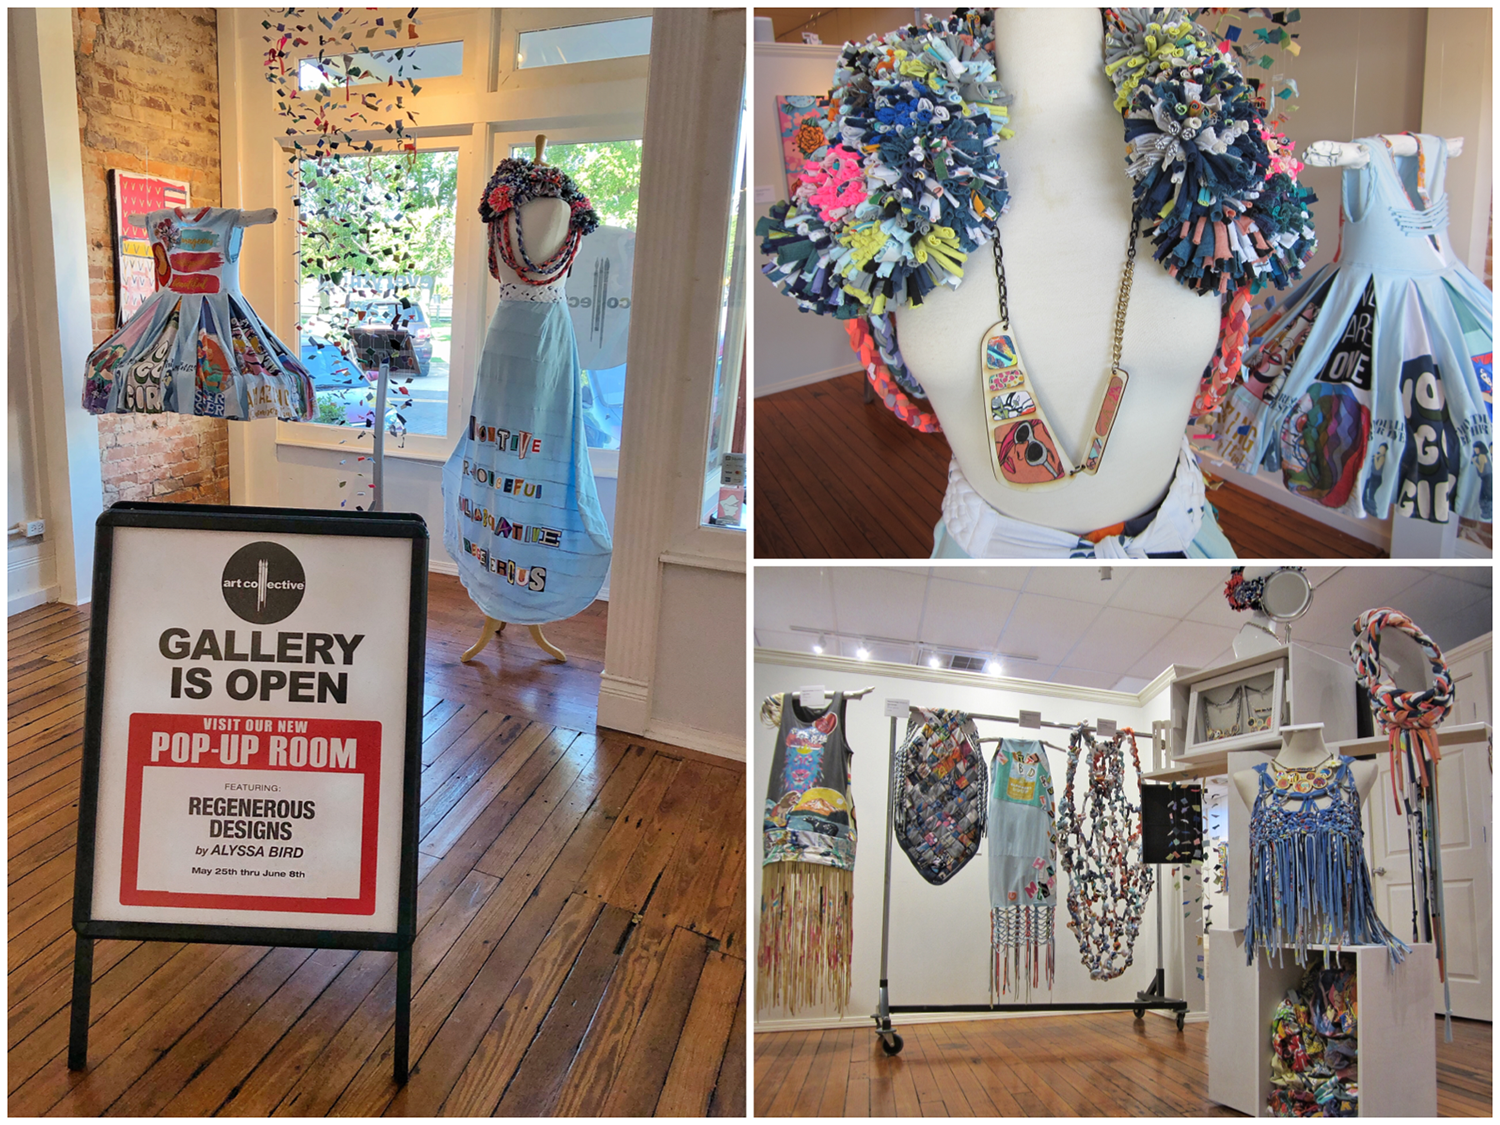 Regenerous Designs Sustainable Fashion collection on display at The Art Collective Gallery